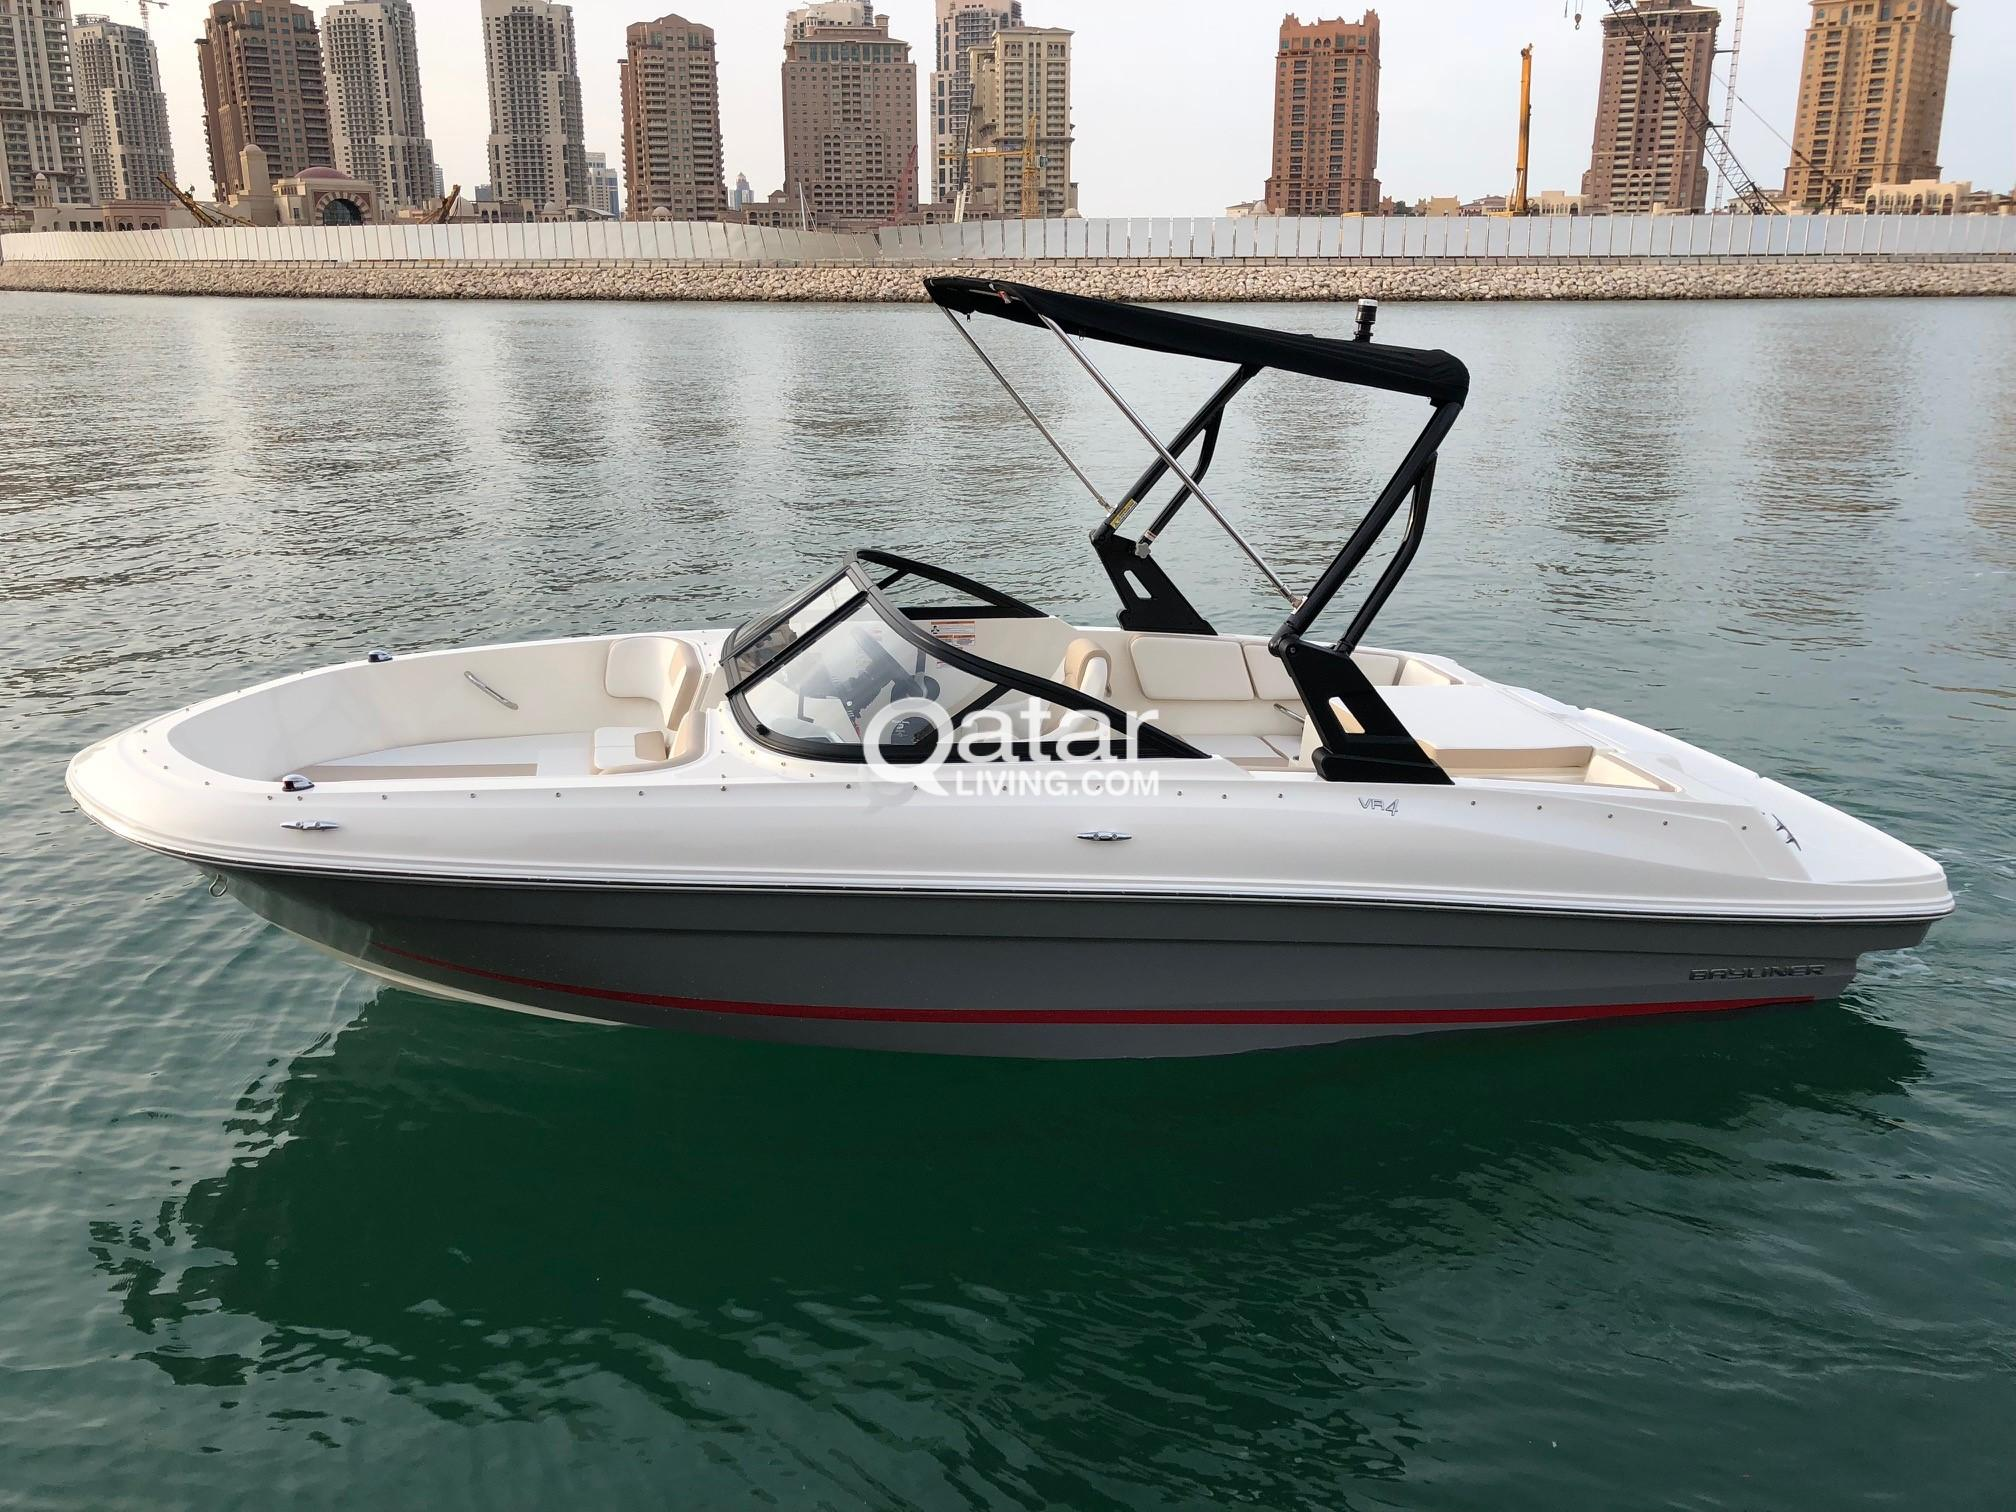 BRAND NEW BAYLINER VR4 ( 2 Years warranty)